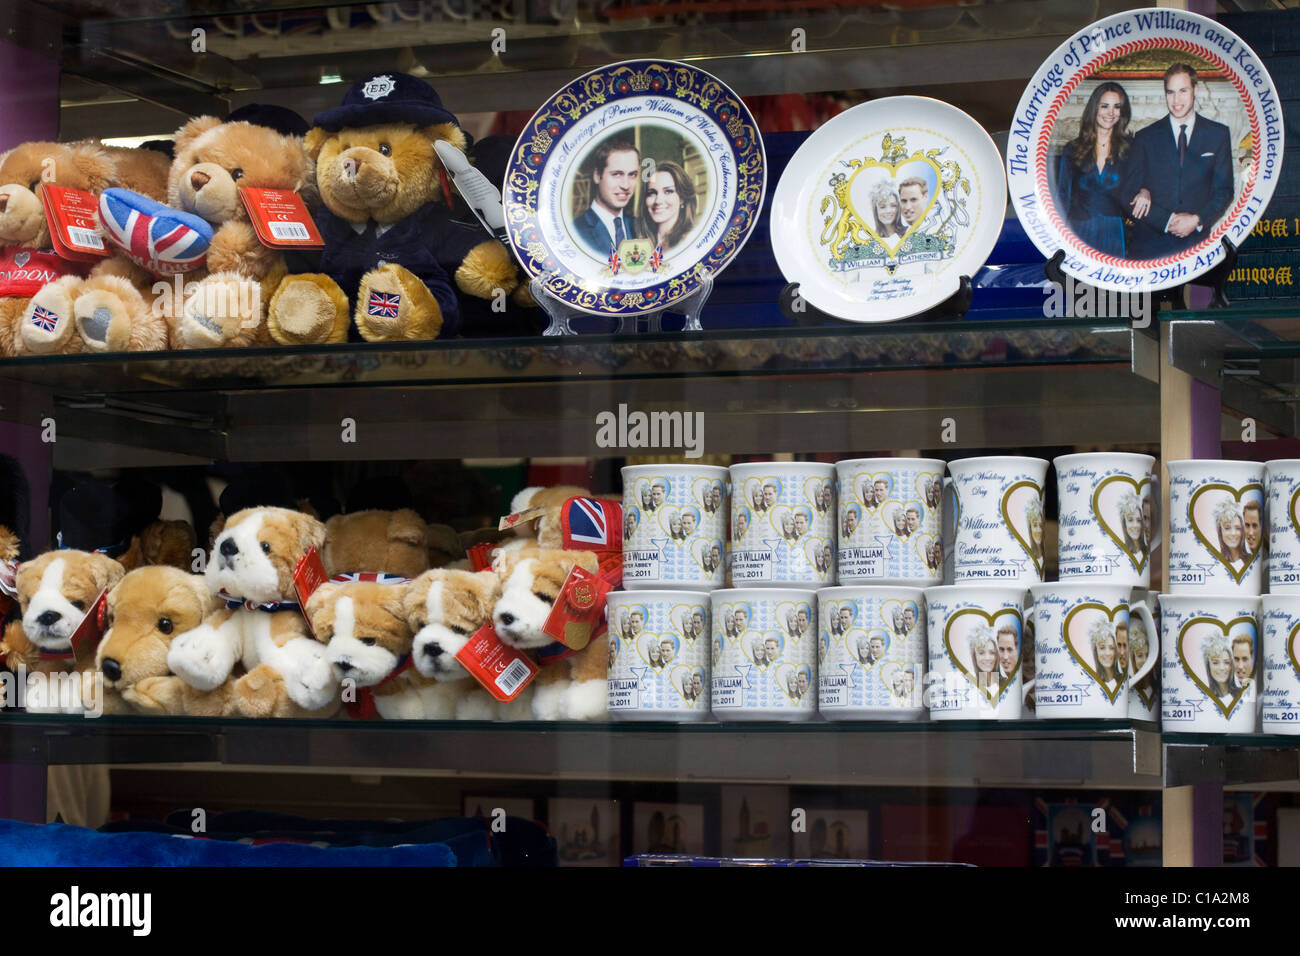 A souvenir Shop selling Memorabilia of Prince William and Kate Middleton's Wedding on the 29th April 2011 The - Stock Image